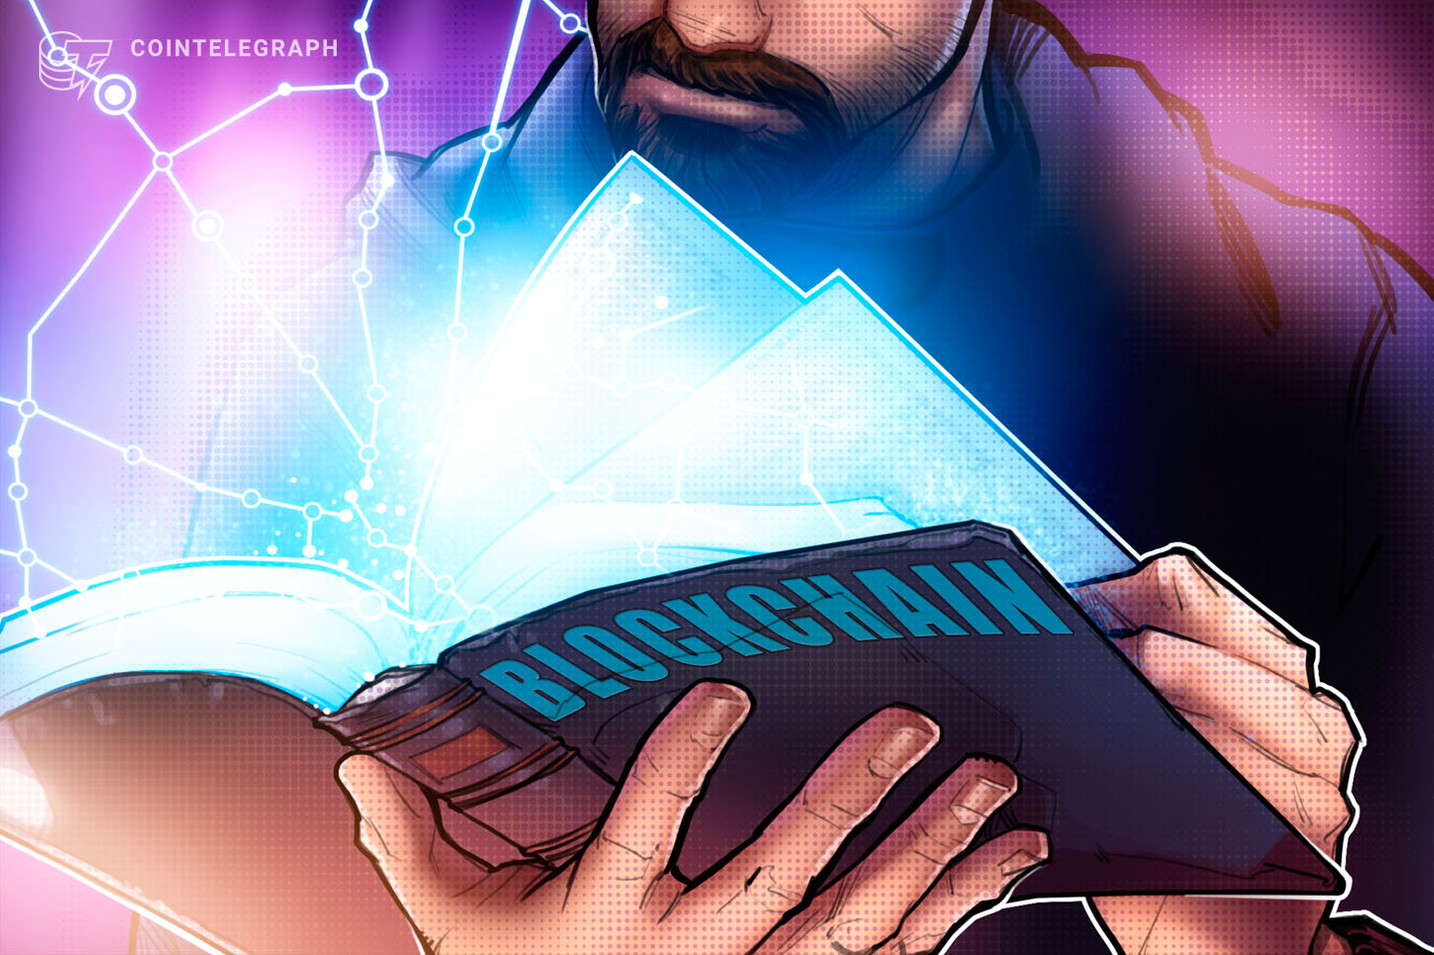 Here are the top 10 books blockchain thought leaders recommend in 2020